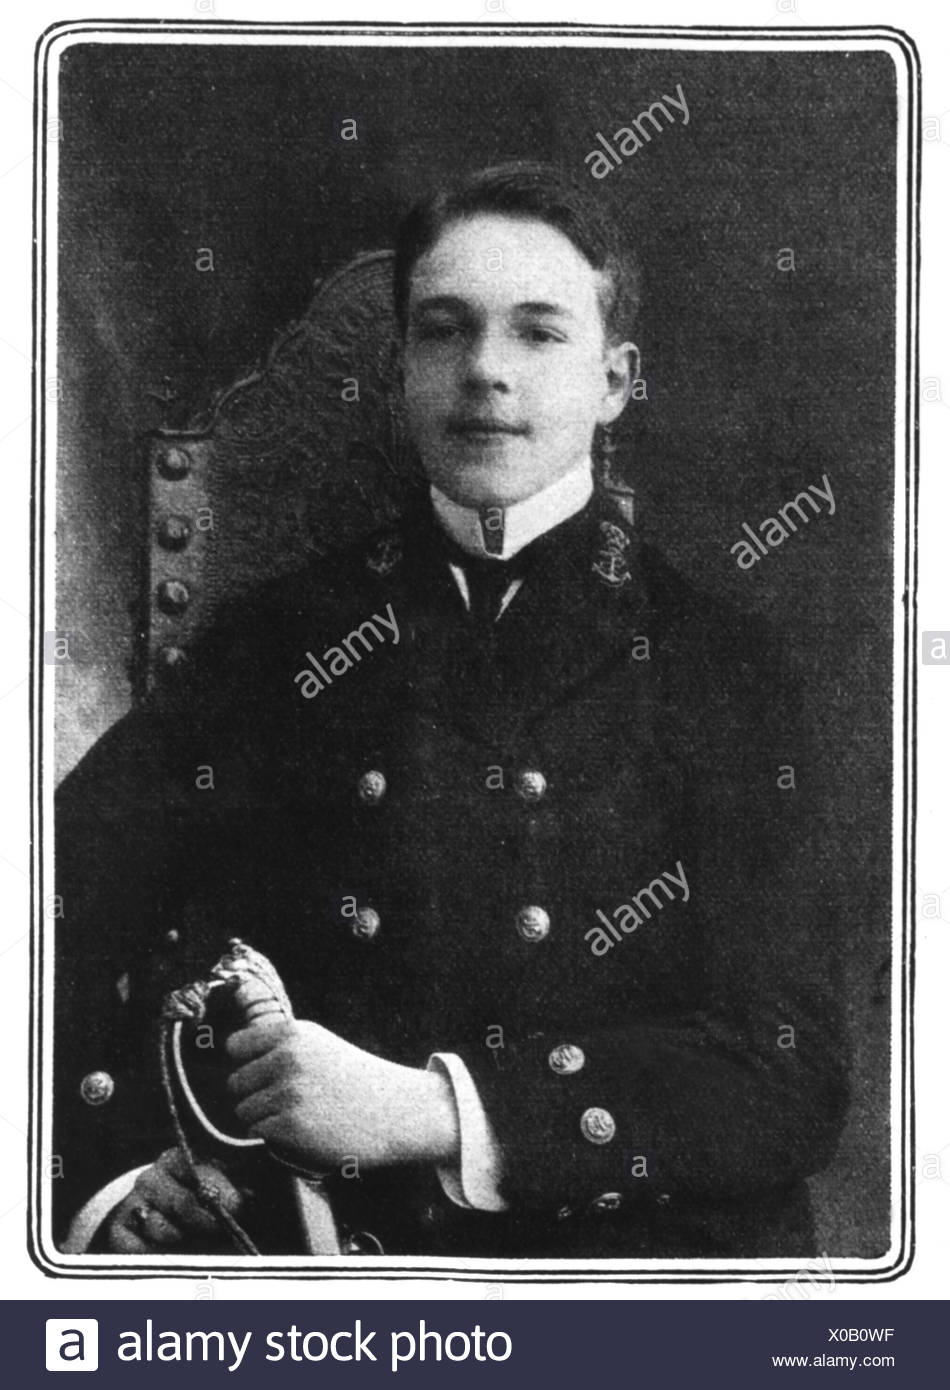 Manuel II, 15.11.1889 - 2.7.1932, King of Portugal 1.2.1908 - 5.10.1910, half length after photo, 1908, Additional-Rights-Clearances-NA Stock Photo